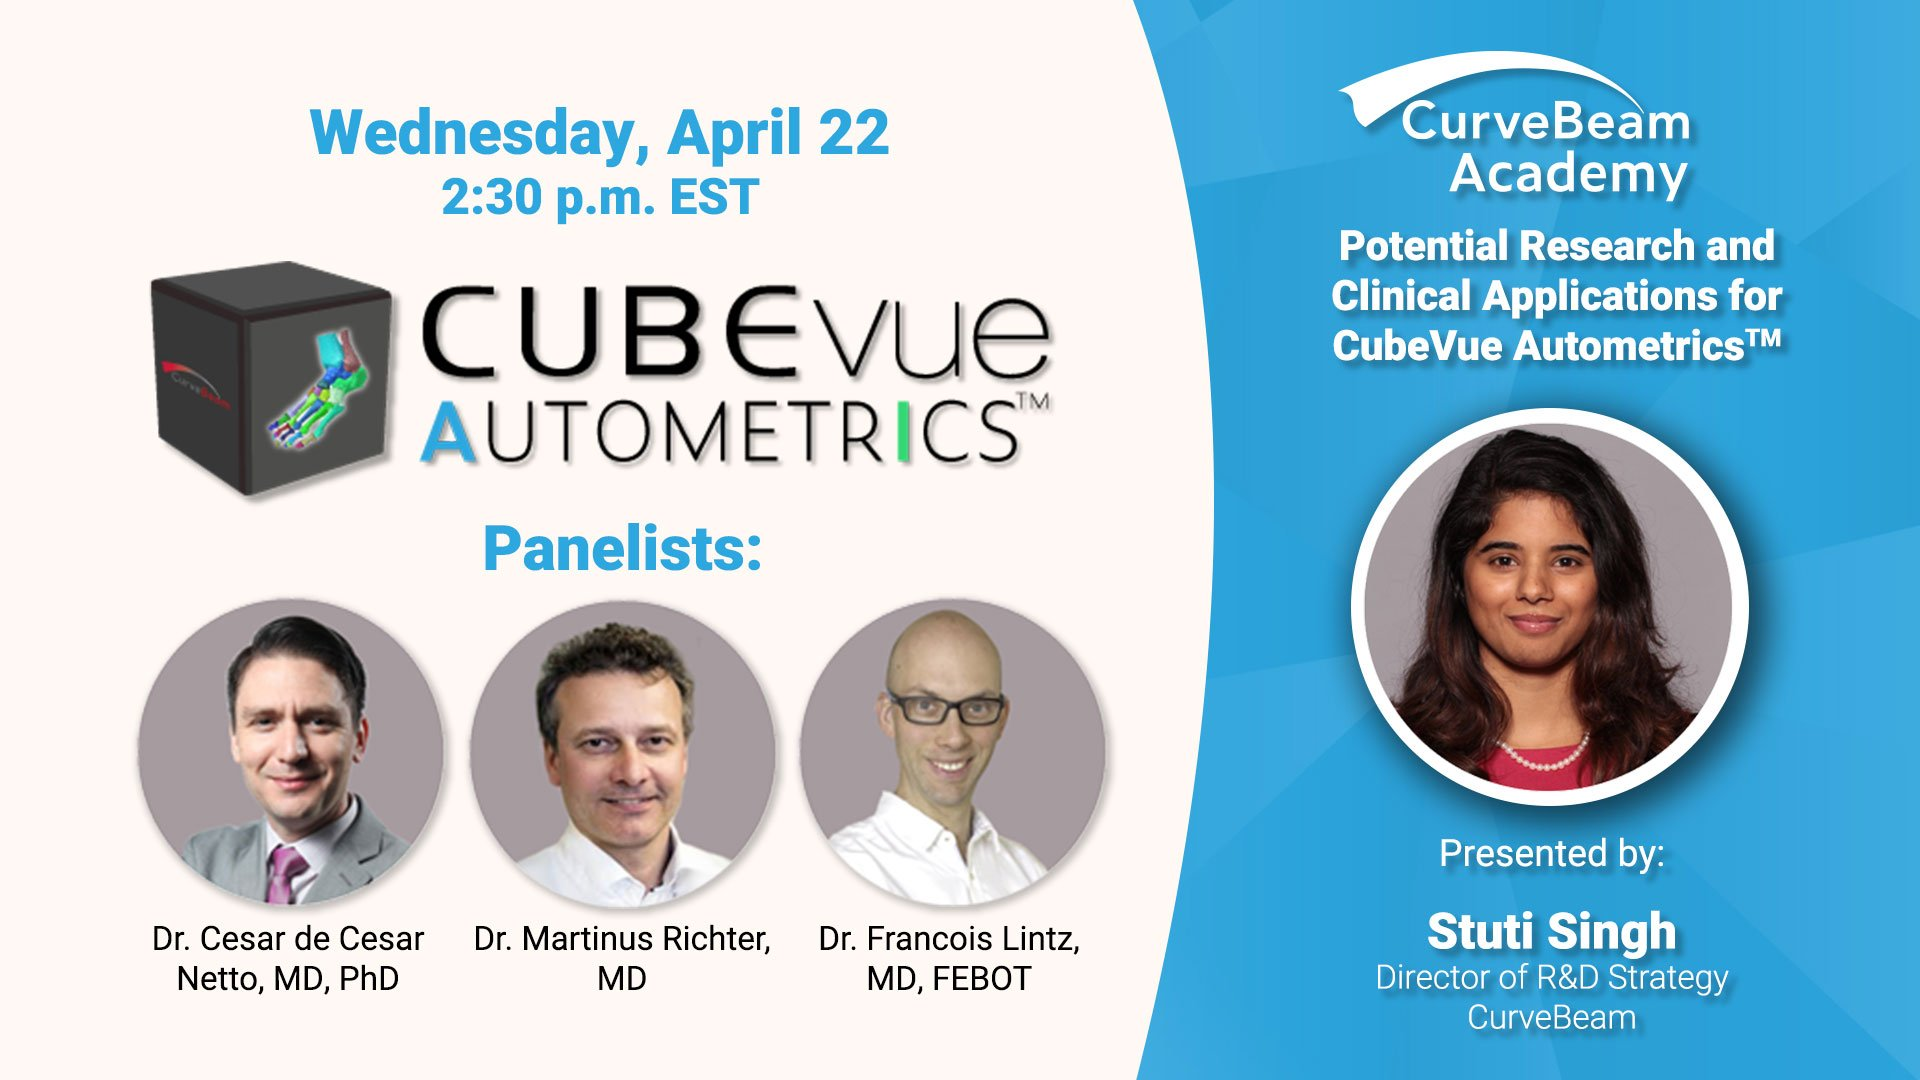 Webinar: Potential Applications For CubeVue Autometrics